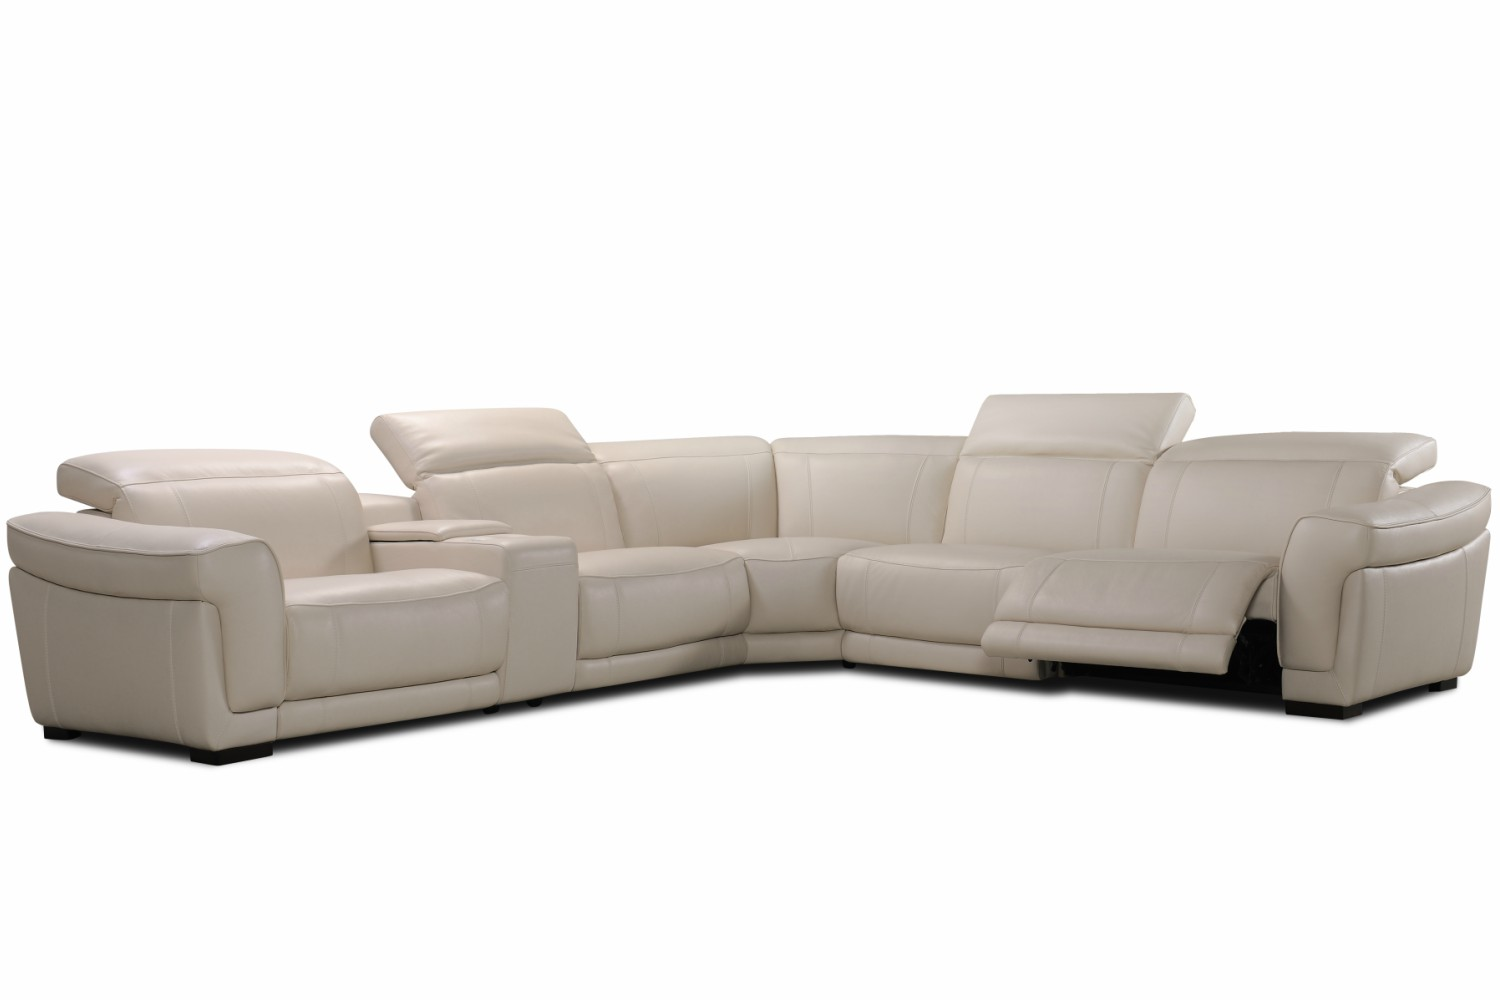 Sofa With Recliner Sonny Corner Sofa Electric Recliner